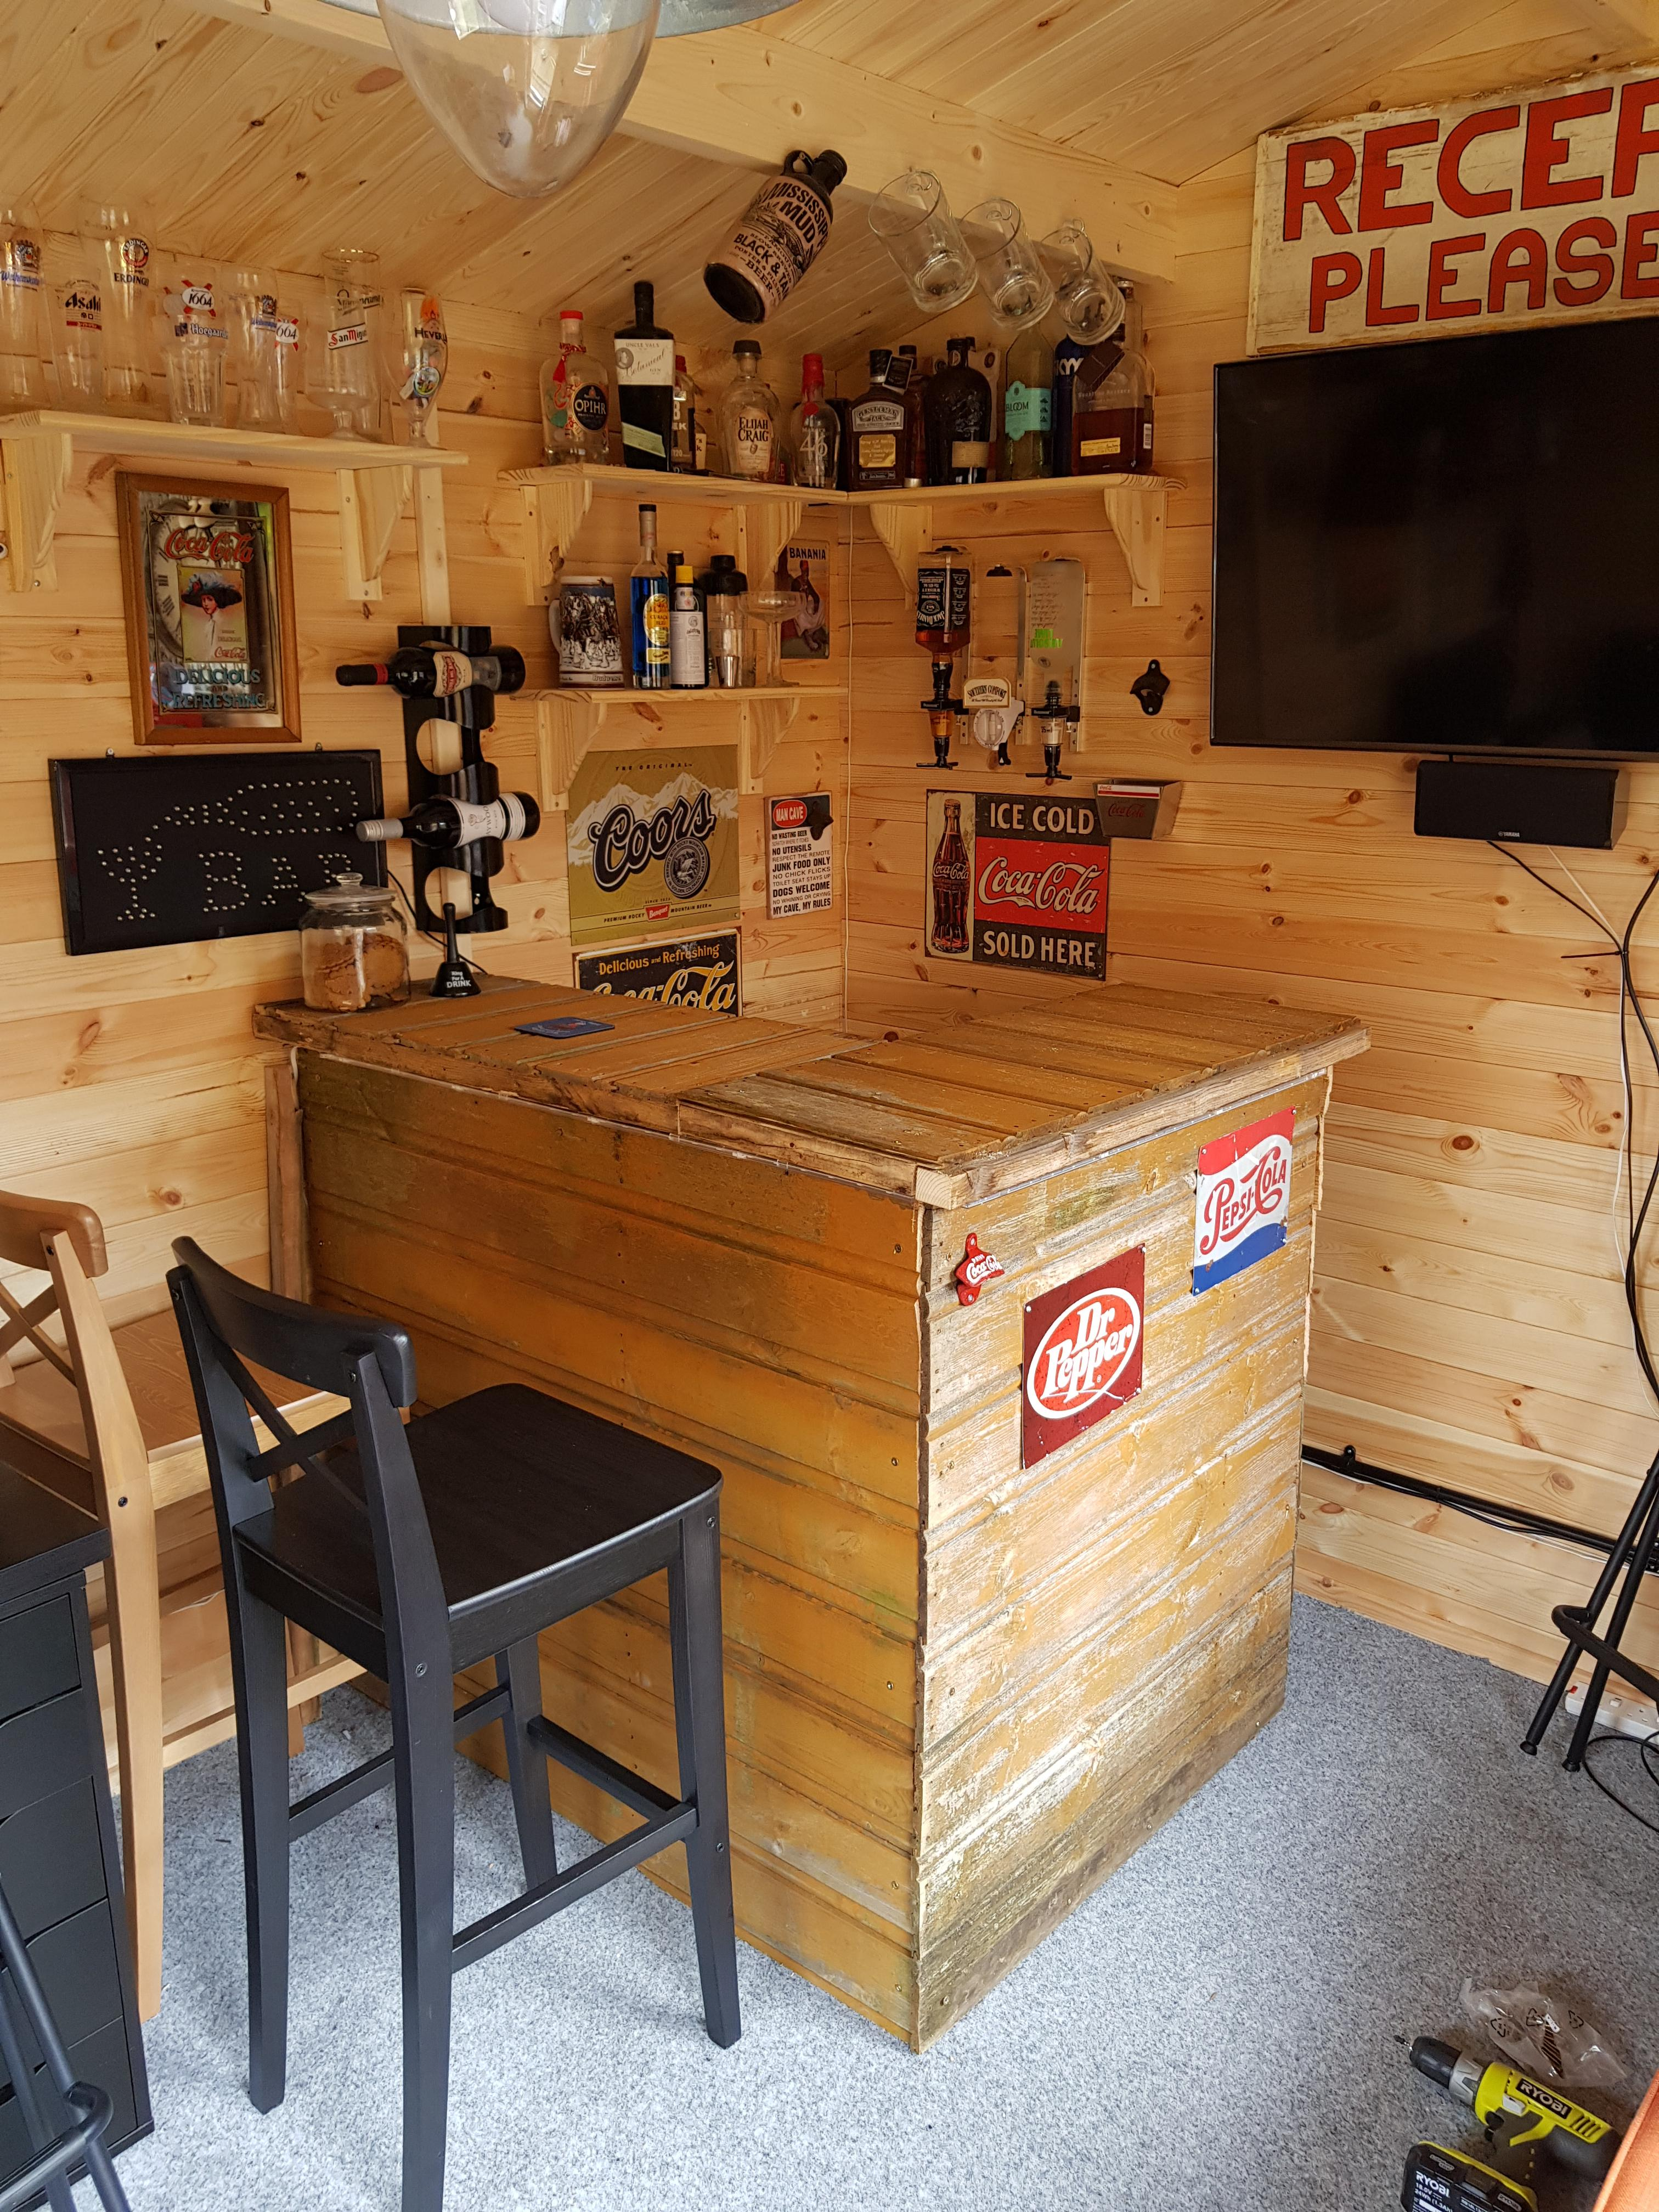 Log Cabin Man Cave Built My Bar Out Of An Old Shed Work In Progress Plenty Of Glasses Under The Bar Also Have A Beer Tap Thats Still To Be Attached